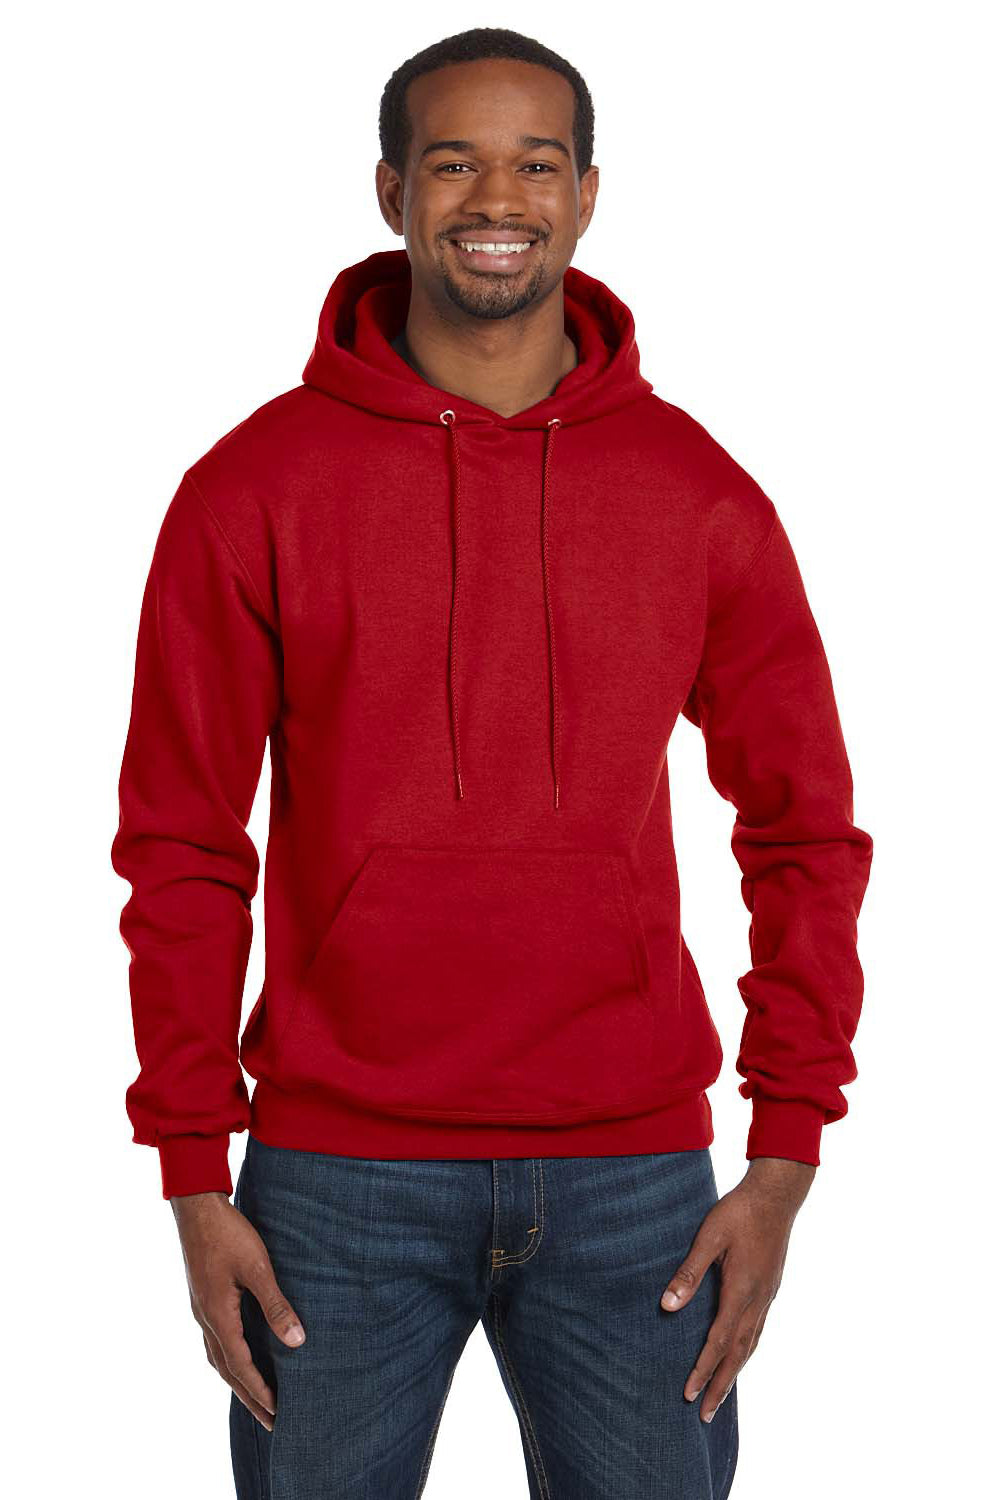 Champion S700 Mens Double Dry Eco Moisture Wicking Fleece Hooded Sweatshirt Hoodie Red Front